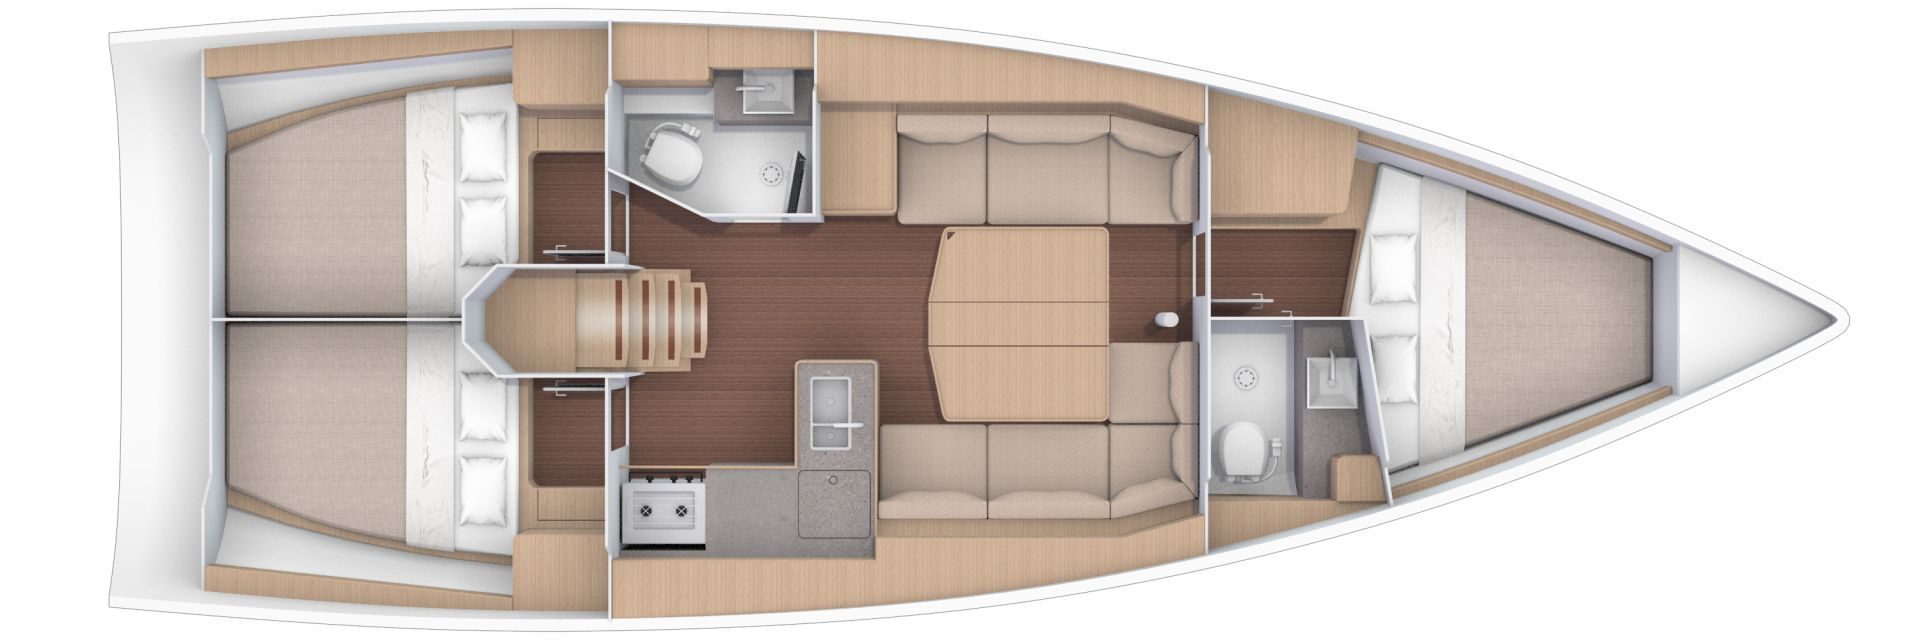 Dufour 390 cabins